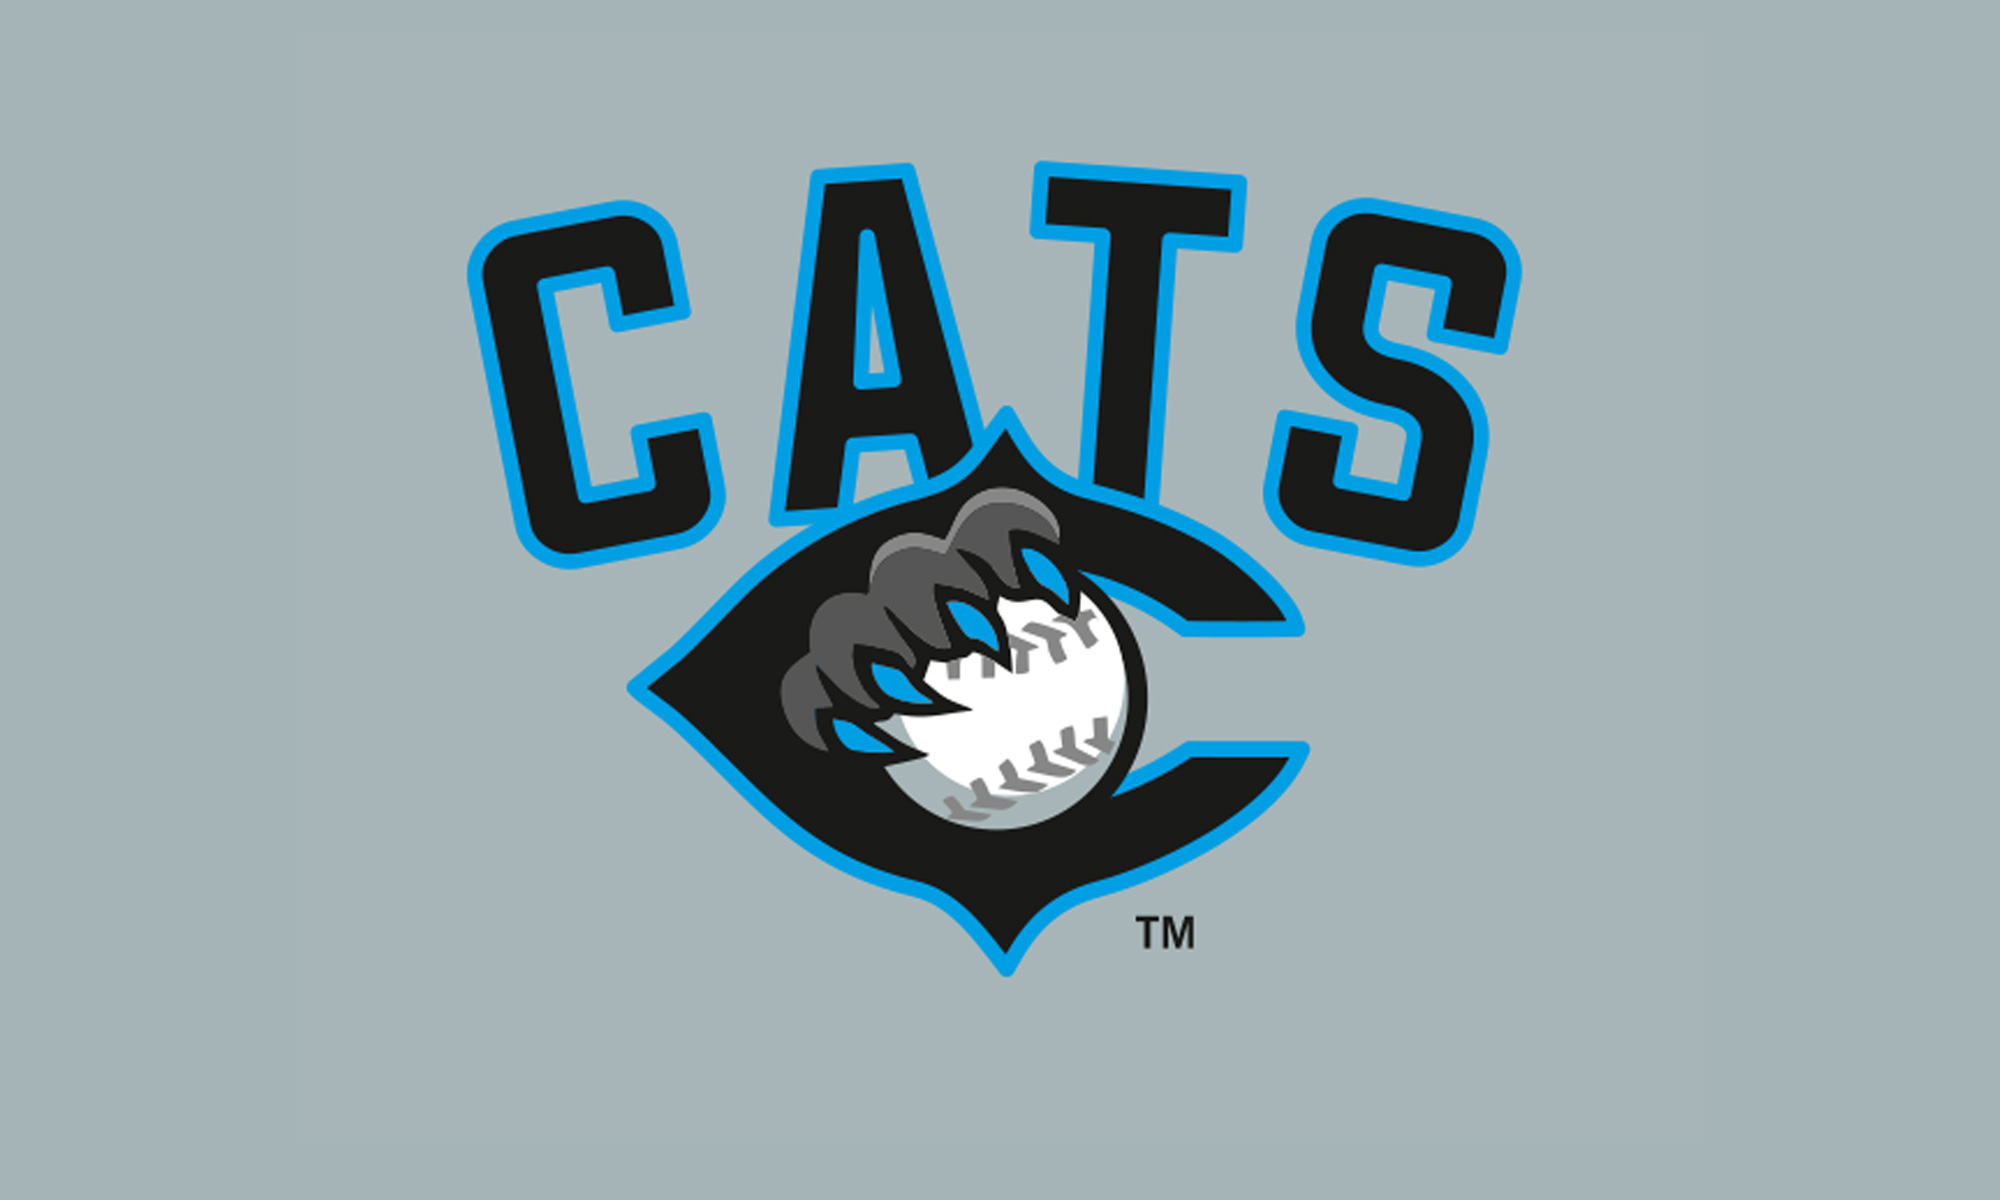 Cats Brno | softball